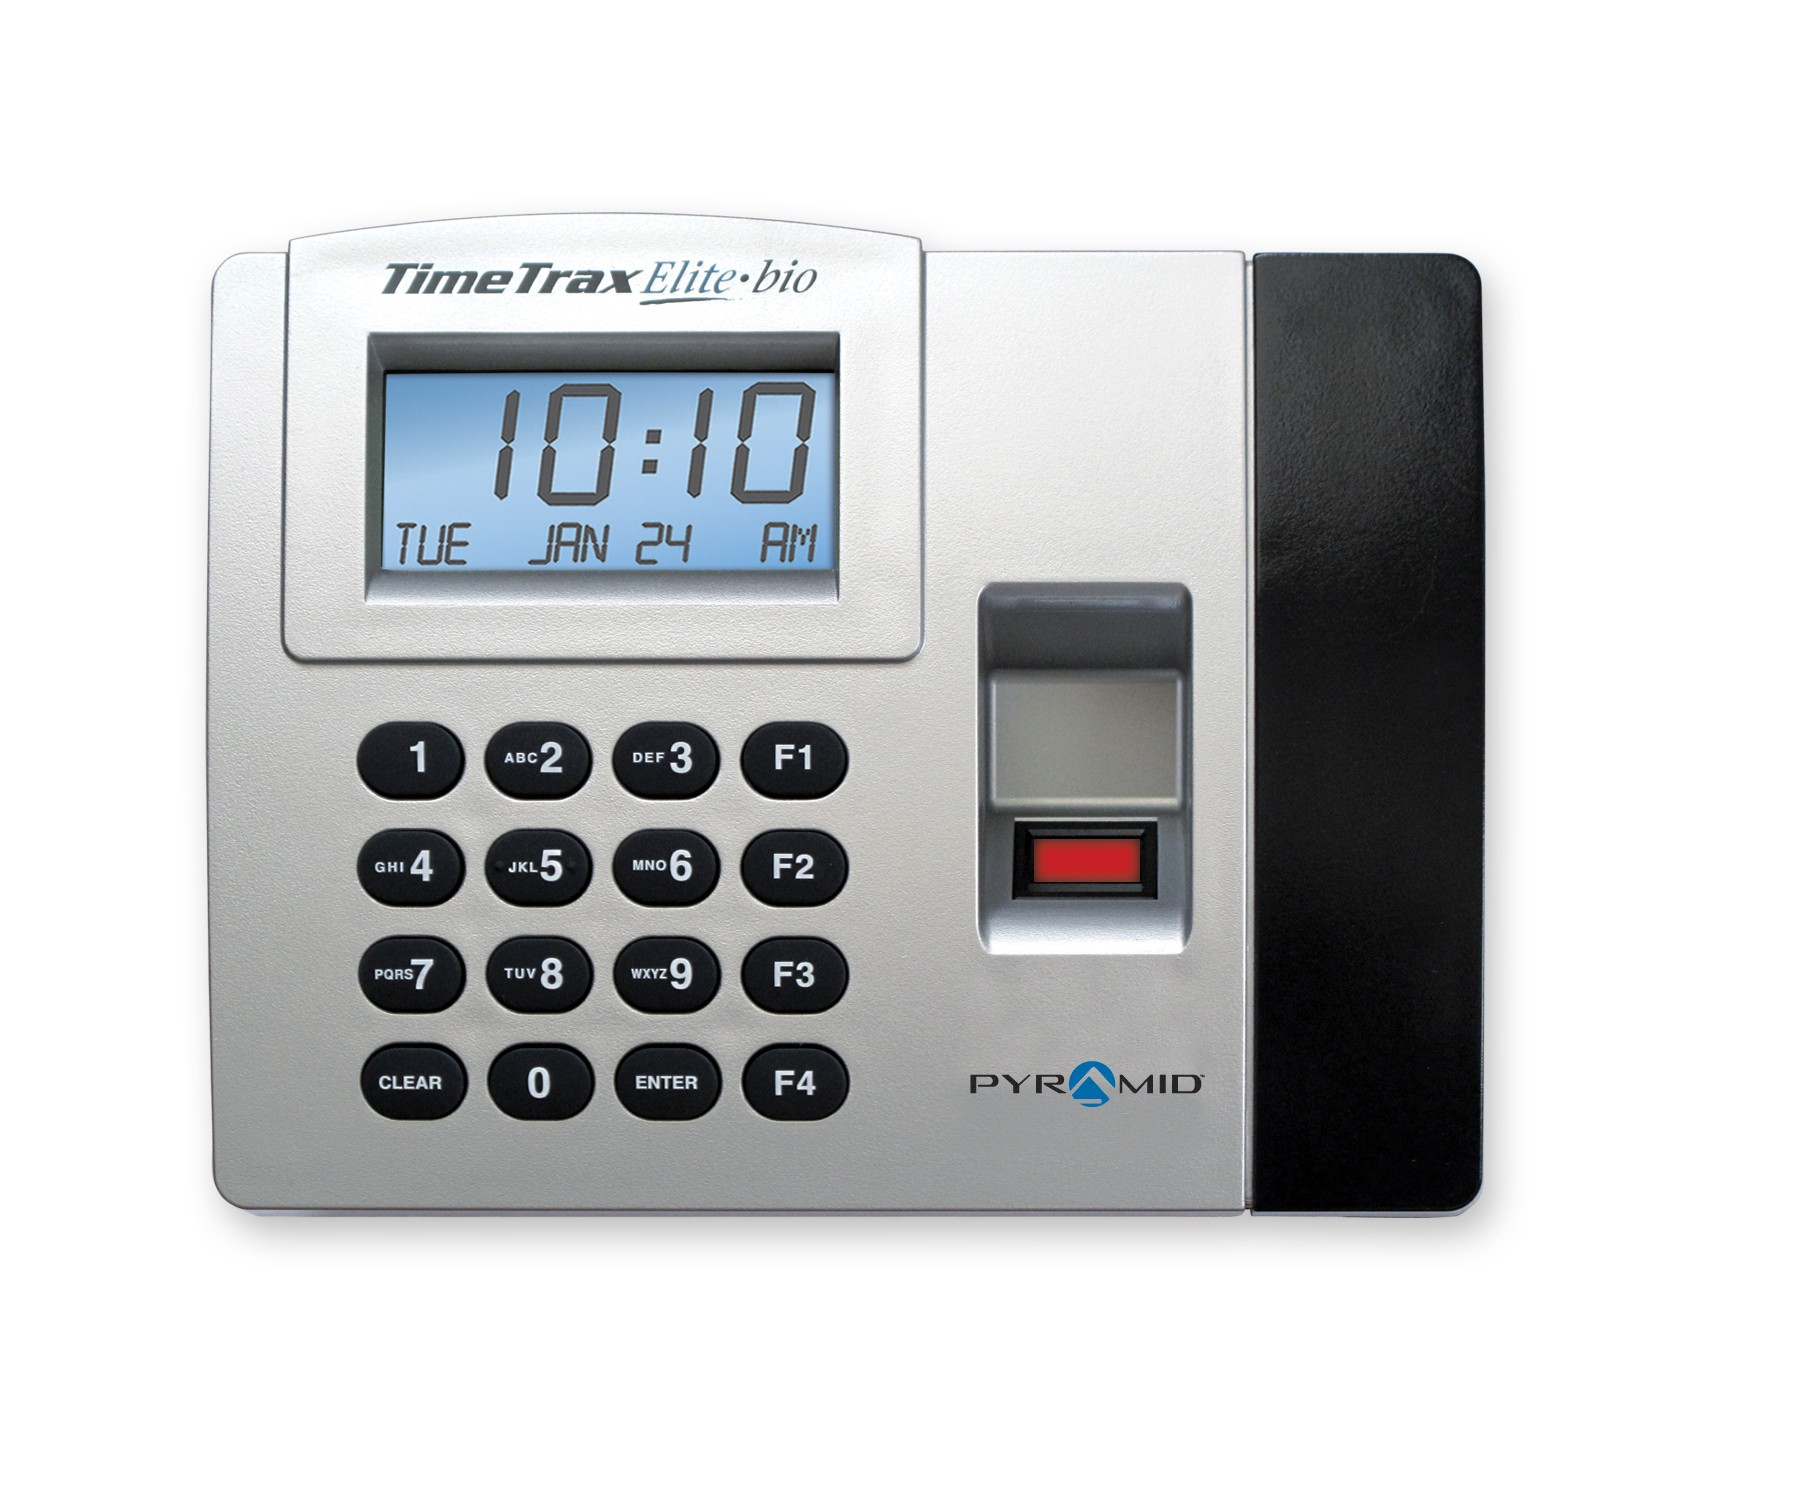 TimeTrax Elite Biometric Time Clock